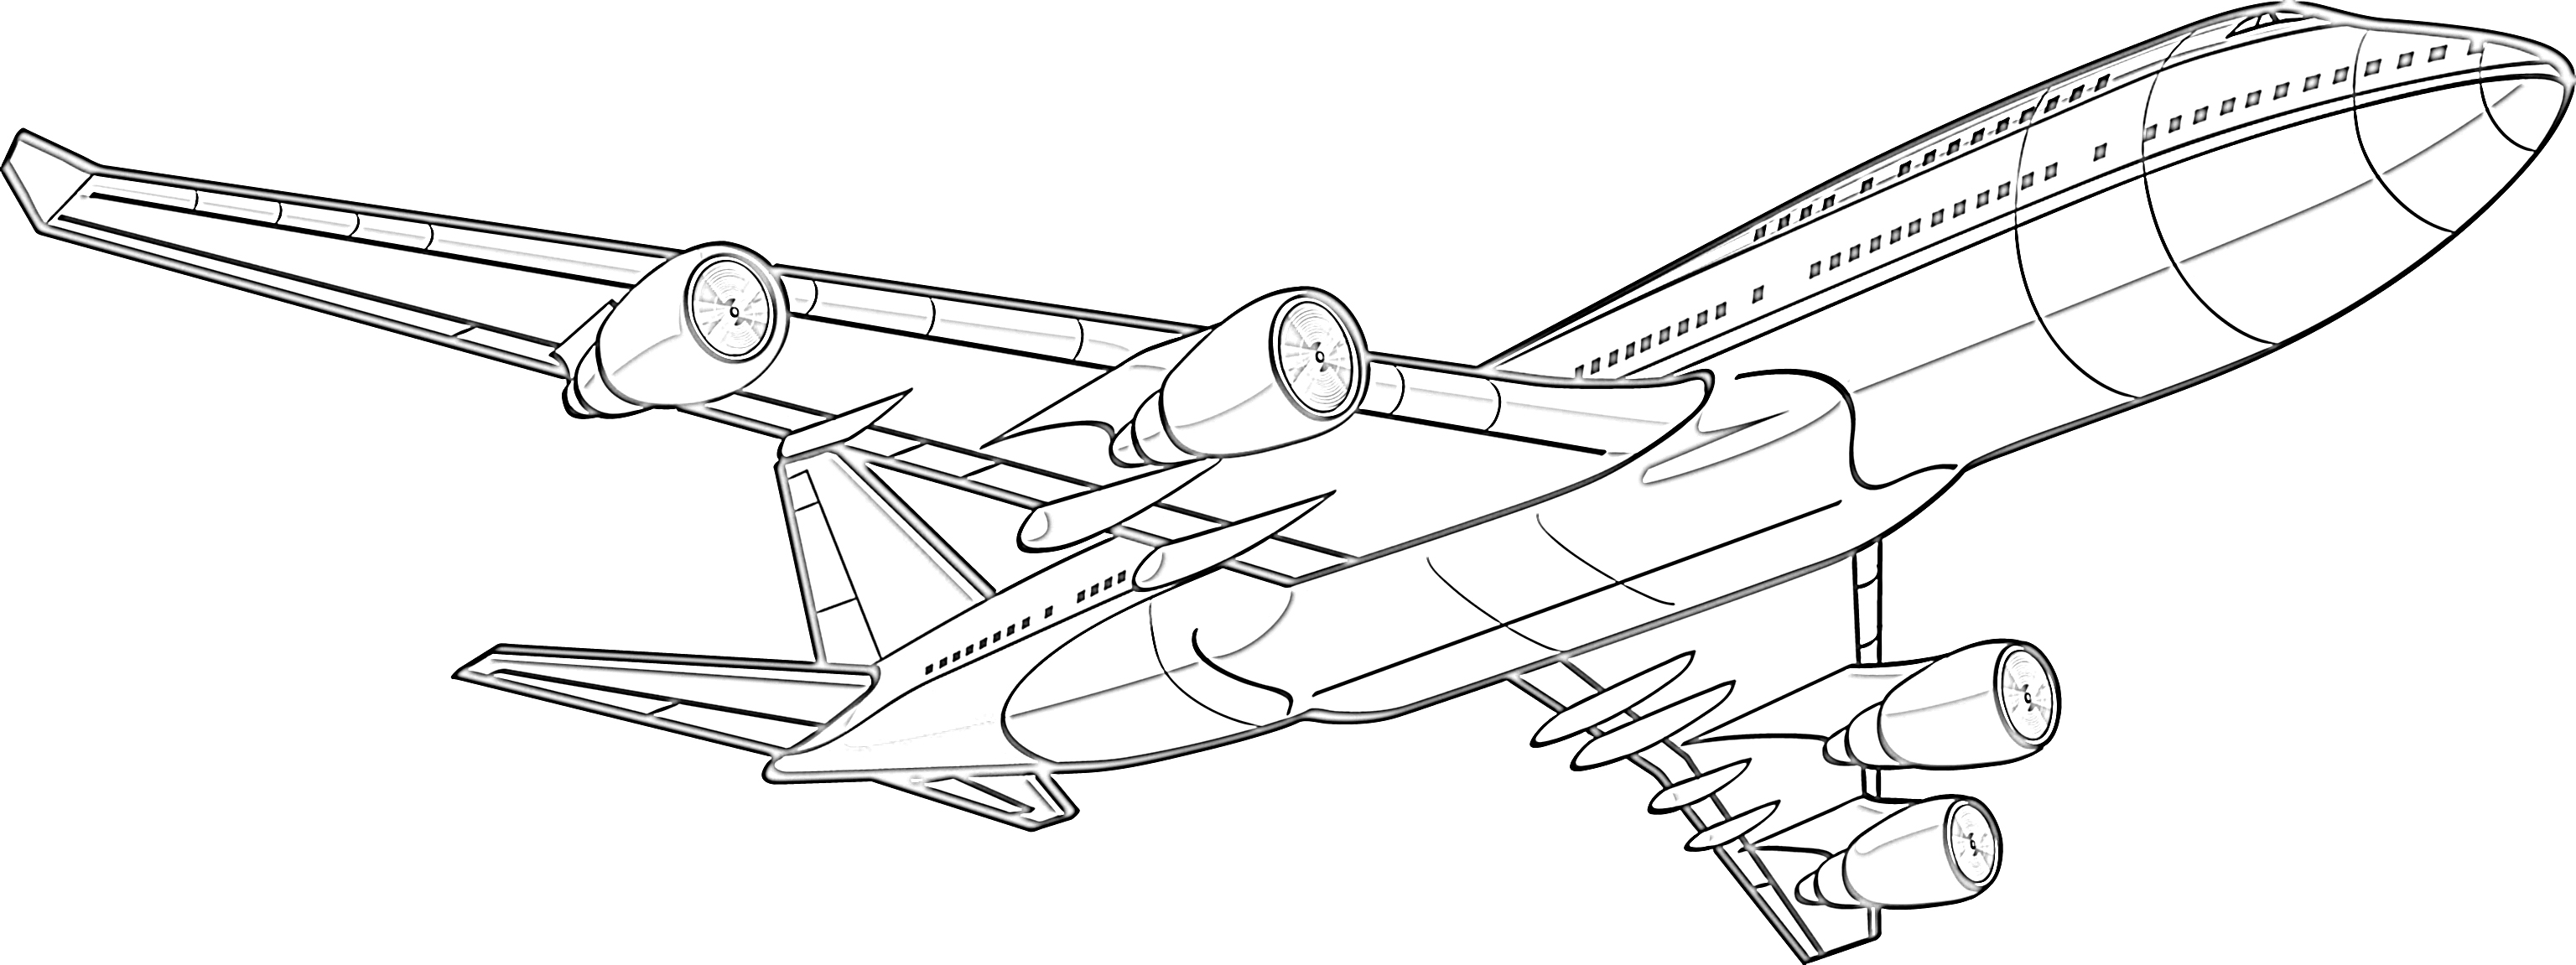 Jetliner airplane coloring page